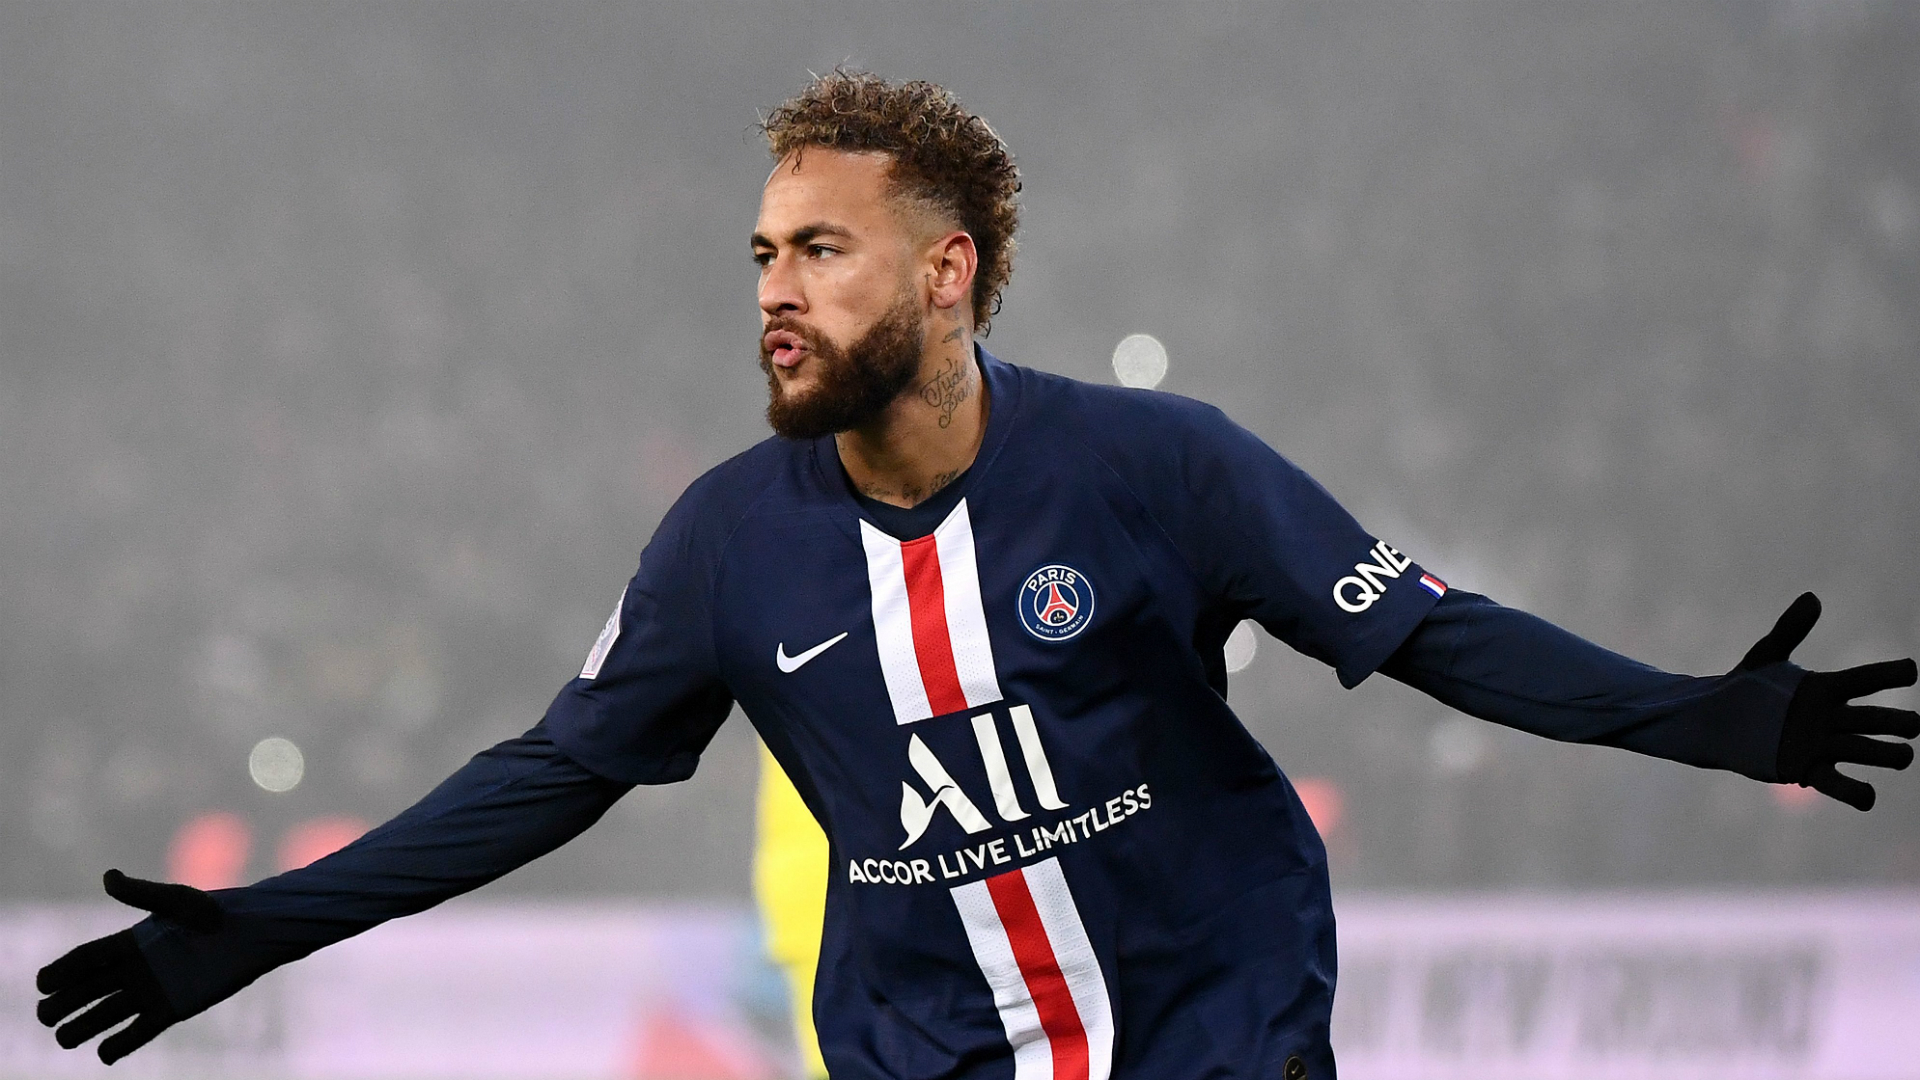 Neymar: Why would I want to leave PSG?